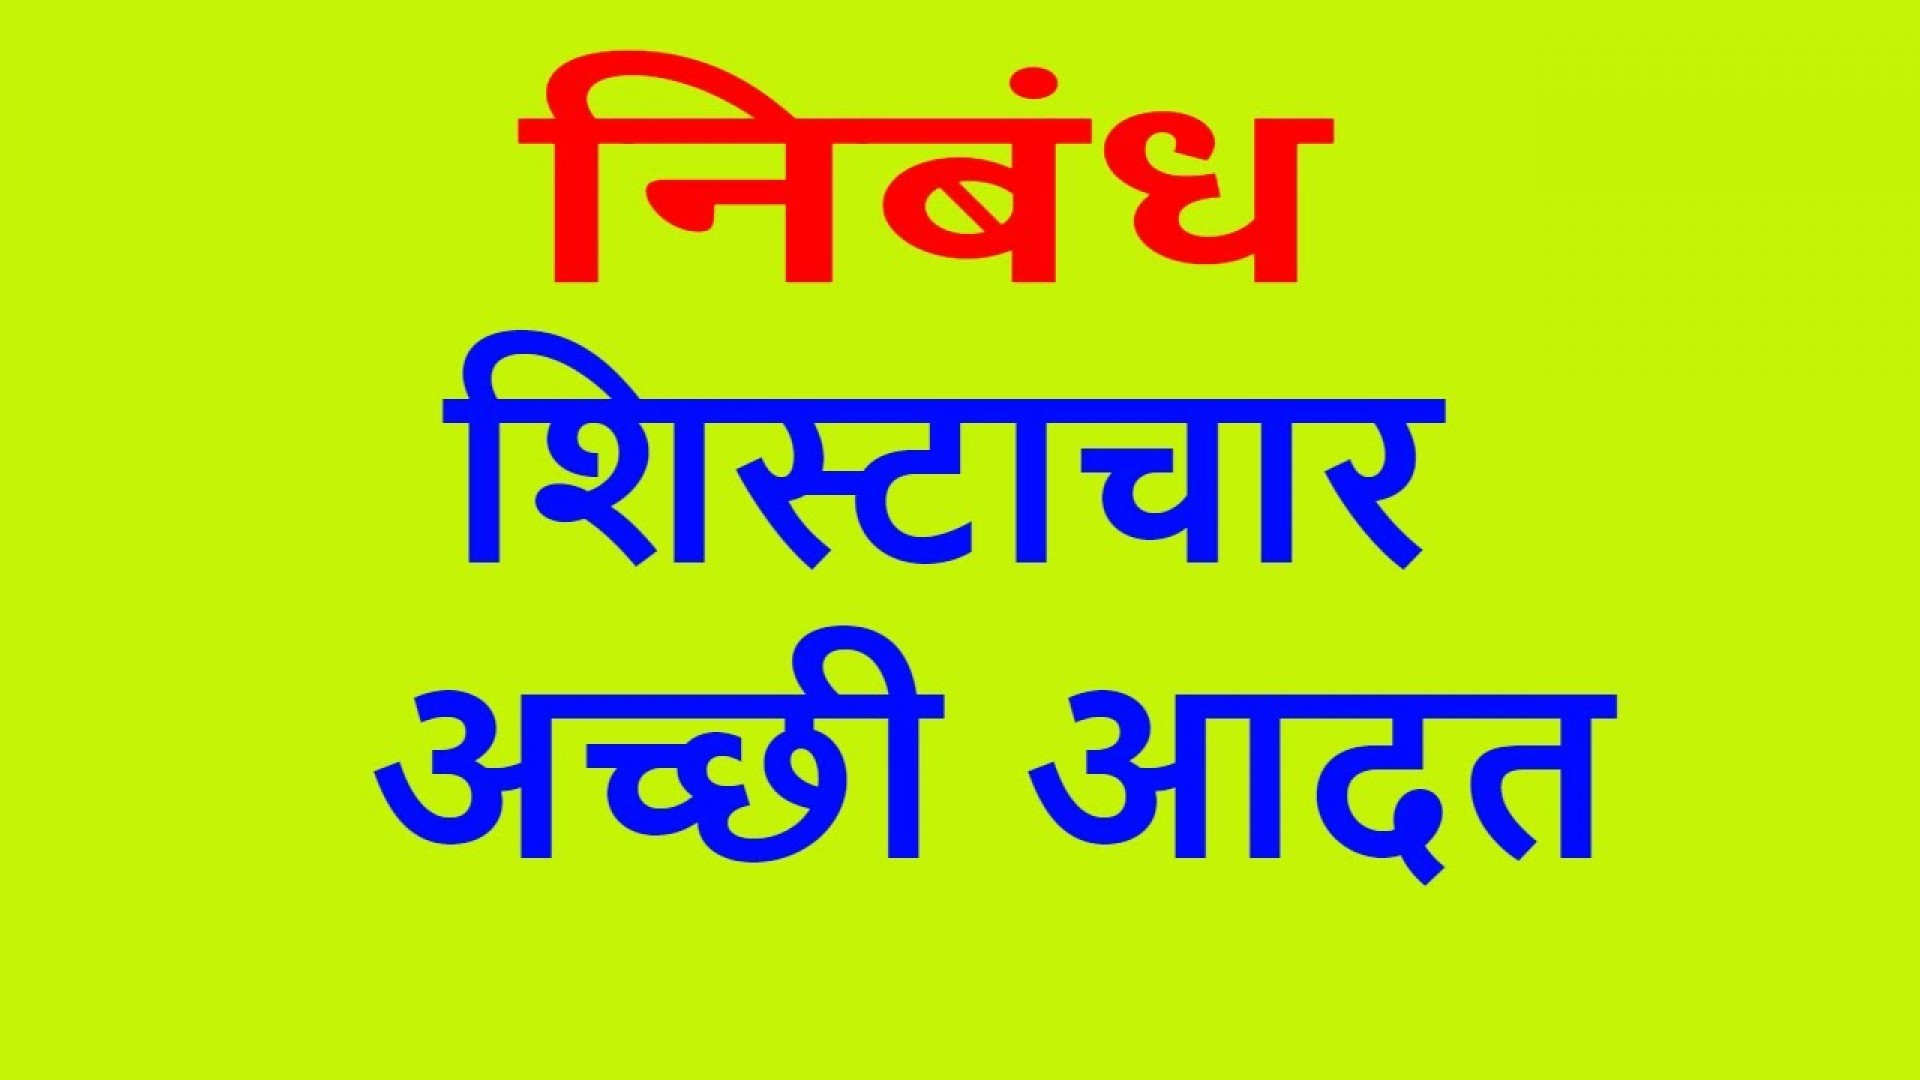 017 Maxresdefault Essay Example Good Habits In Exceptional Hindi Reading Habit Wikipedia 1920